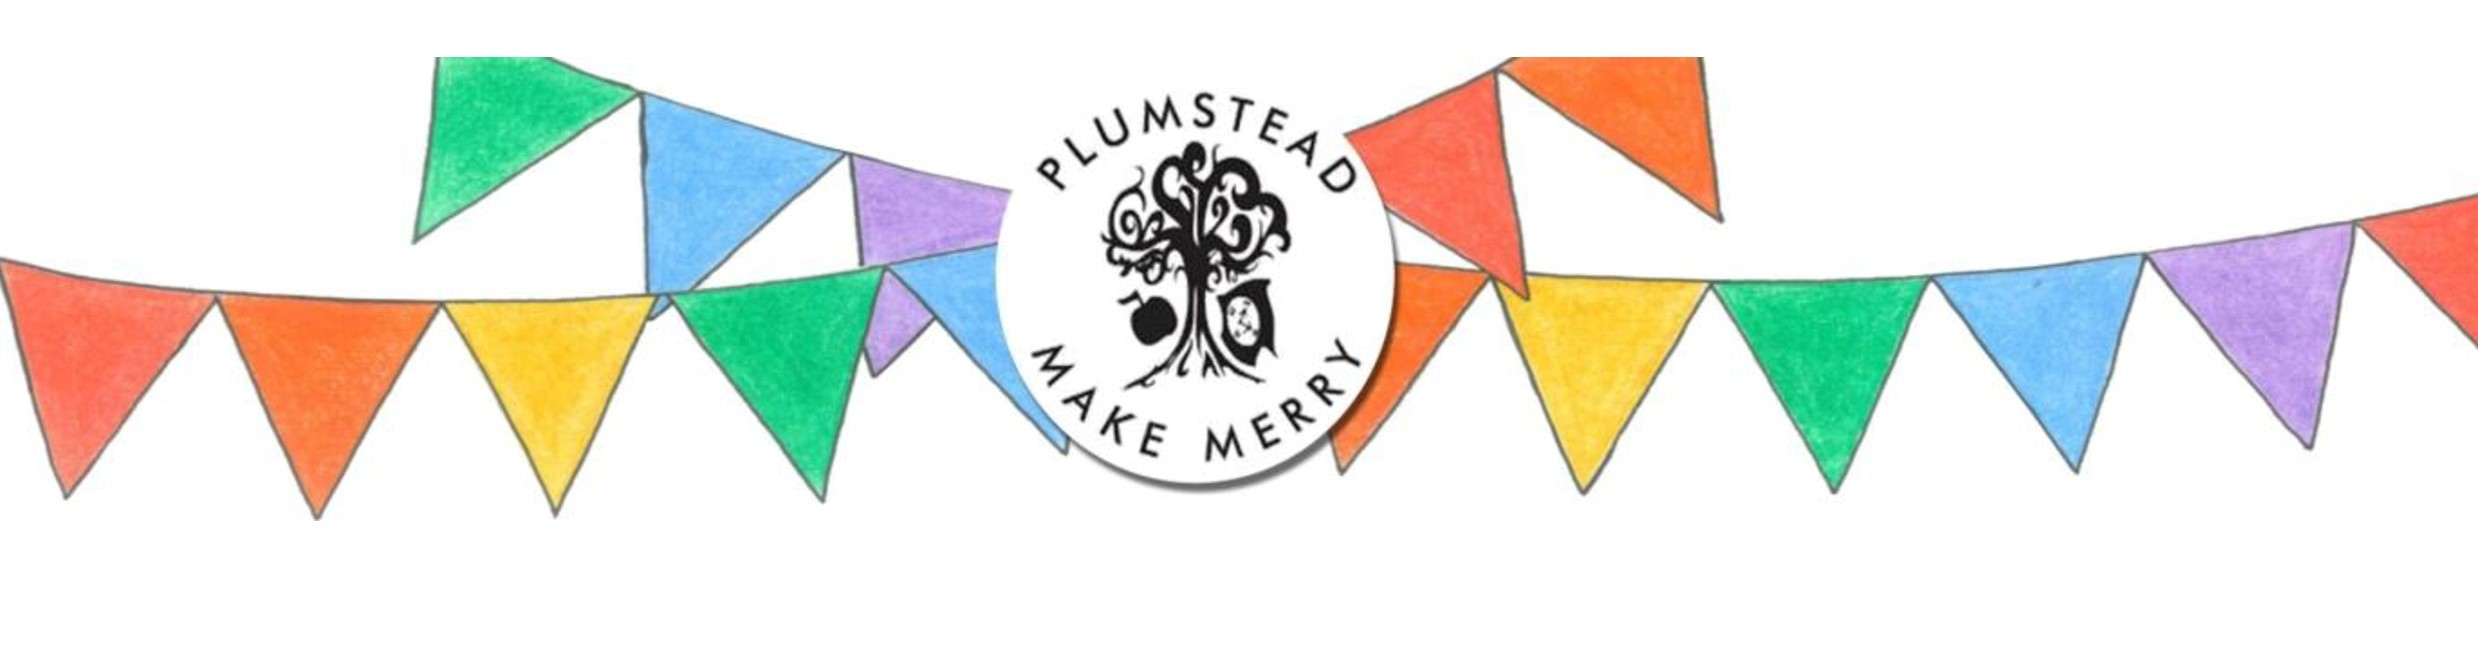 Plumstead Make Merry